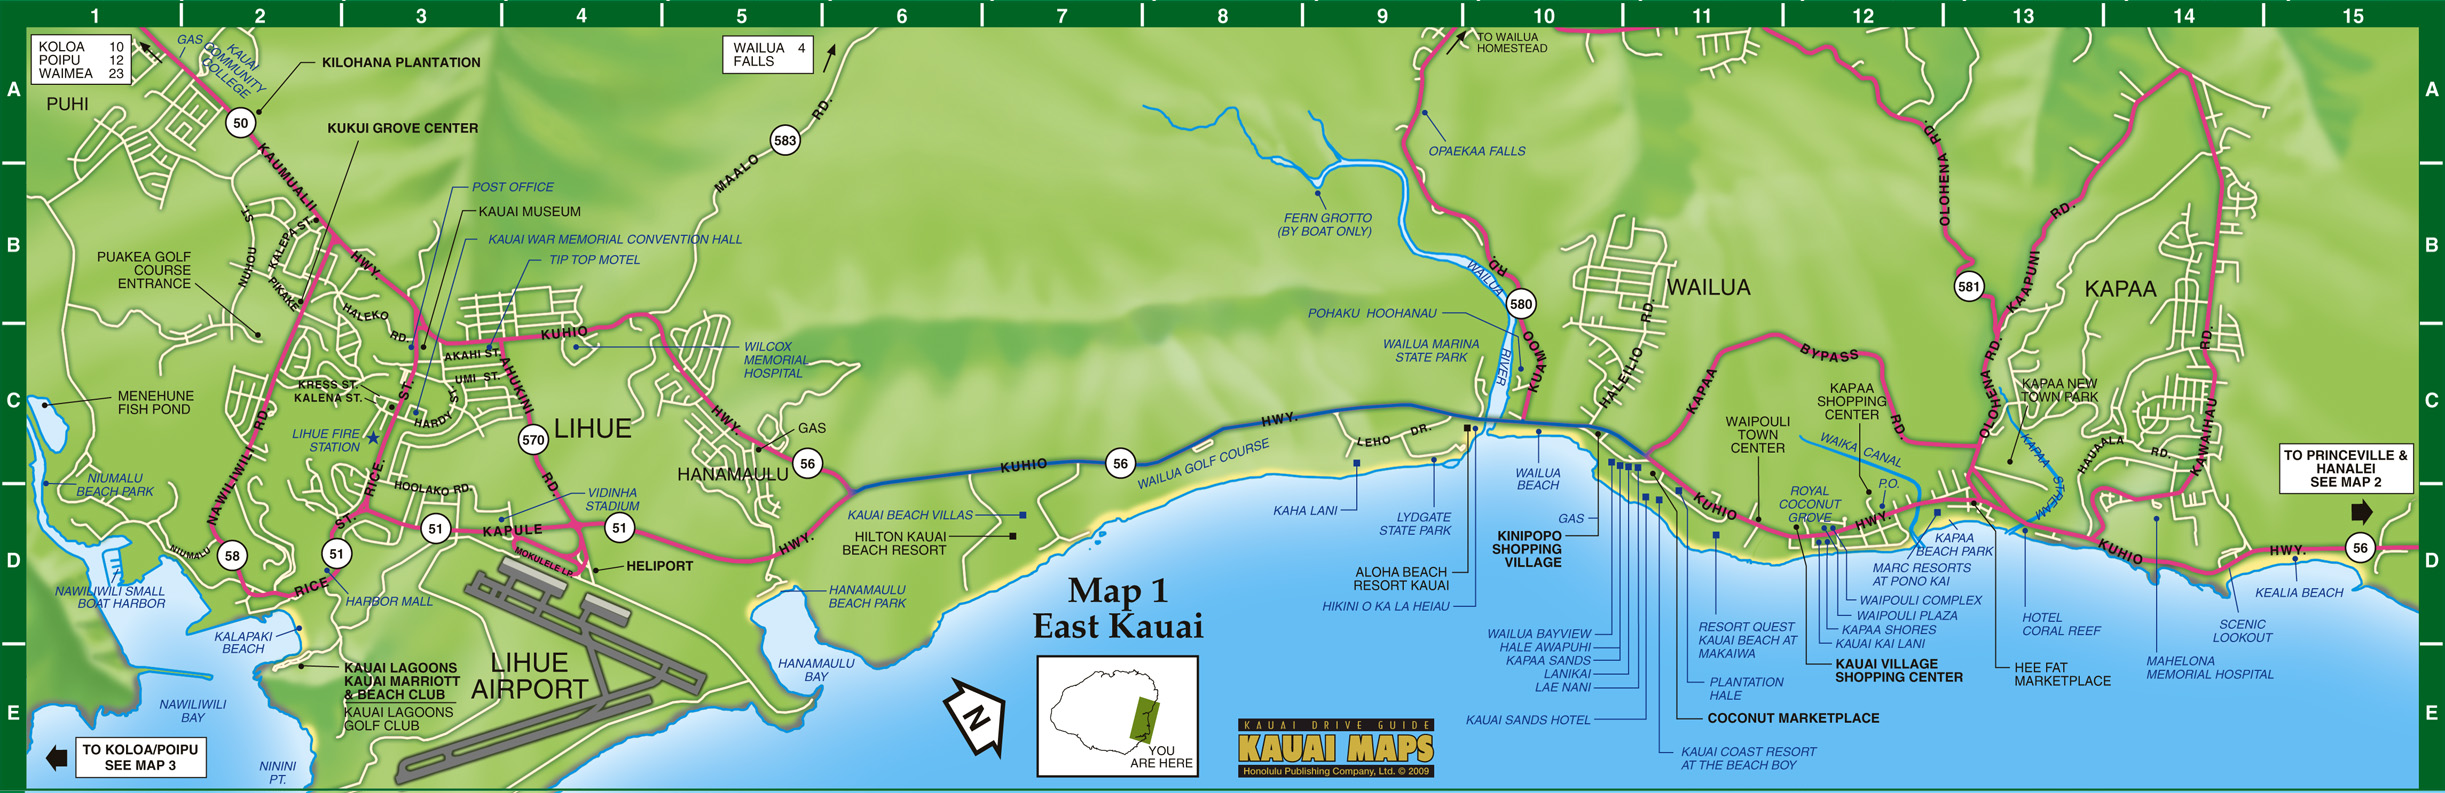 East Kauai Map Kauai HI US mappery – Tourist Map Of Kauai